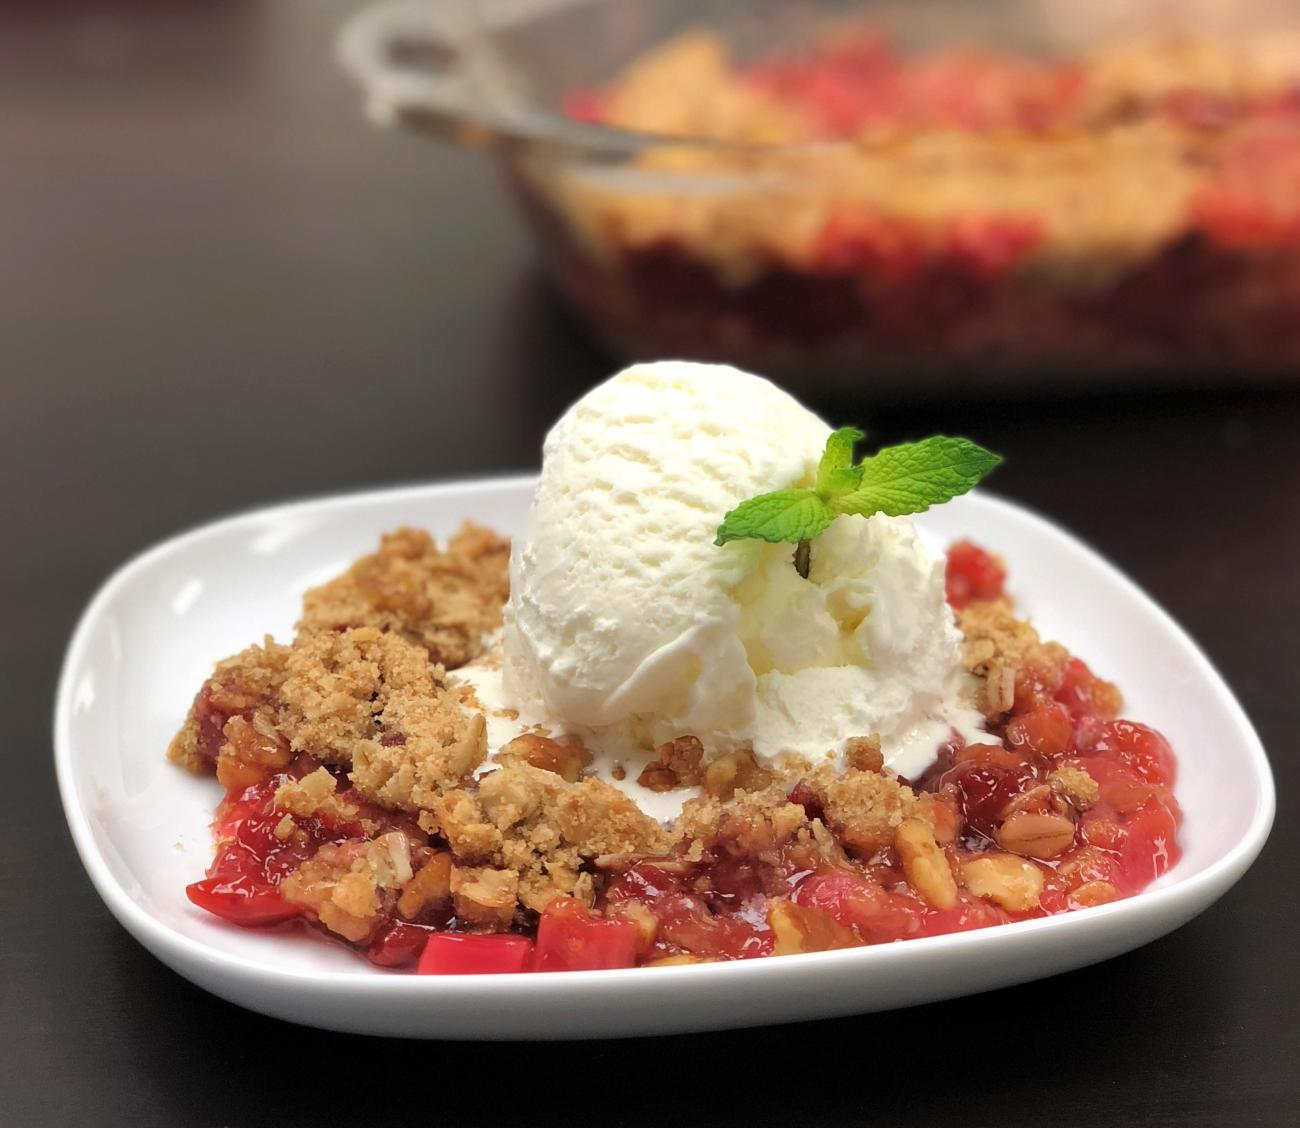 Recipe for Rhubarb-Cherry Crunch